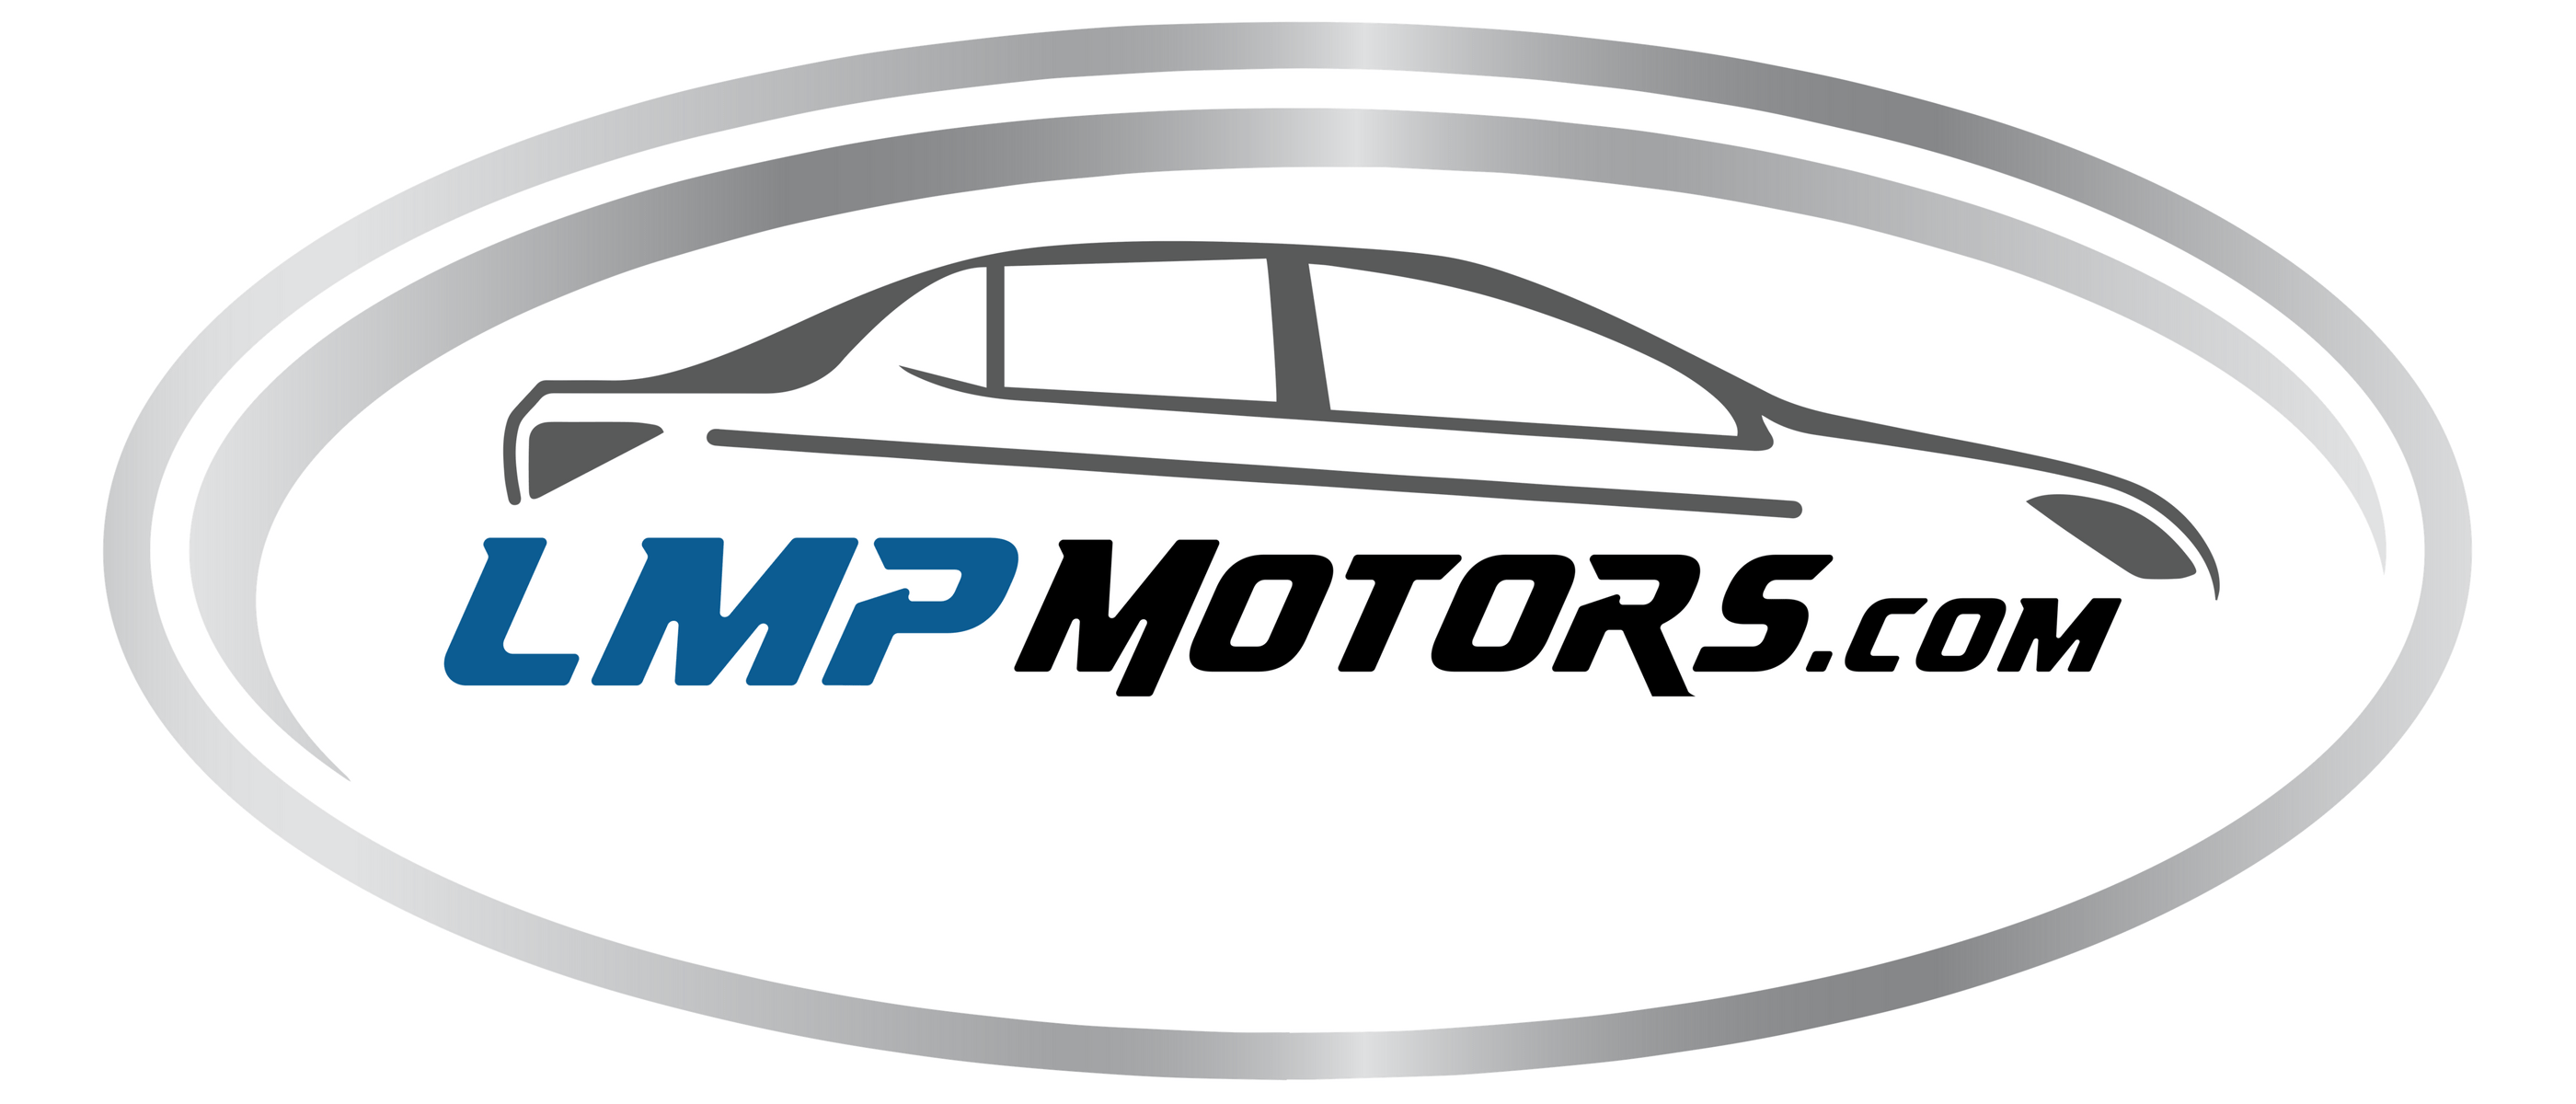 Lmp Motors Festiva Convention Amp Expo